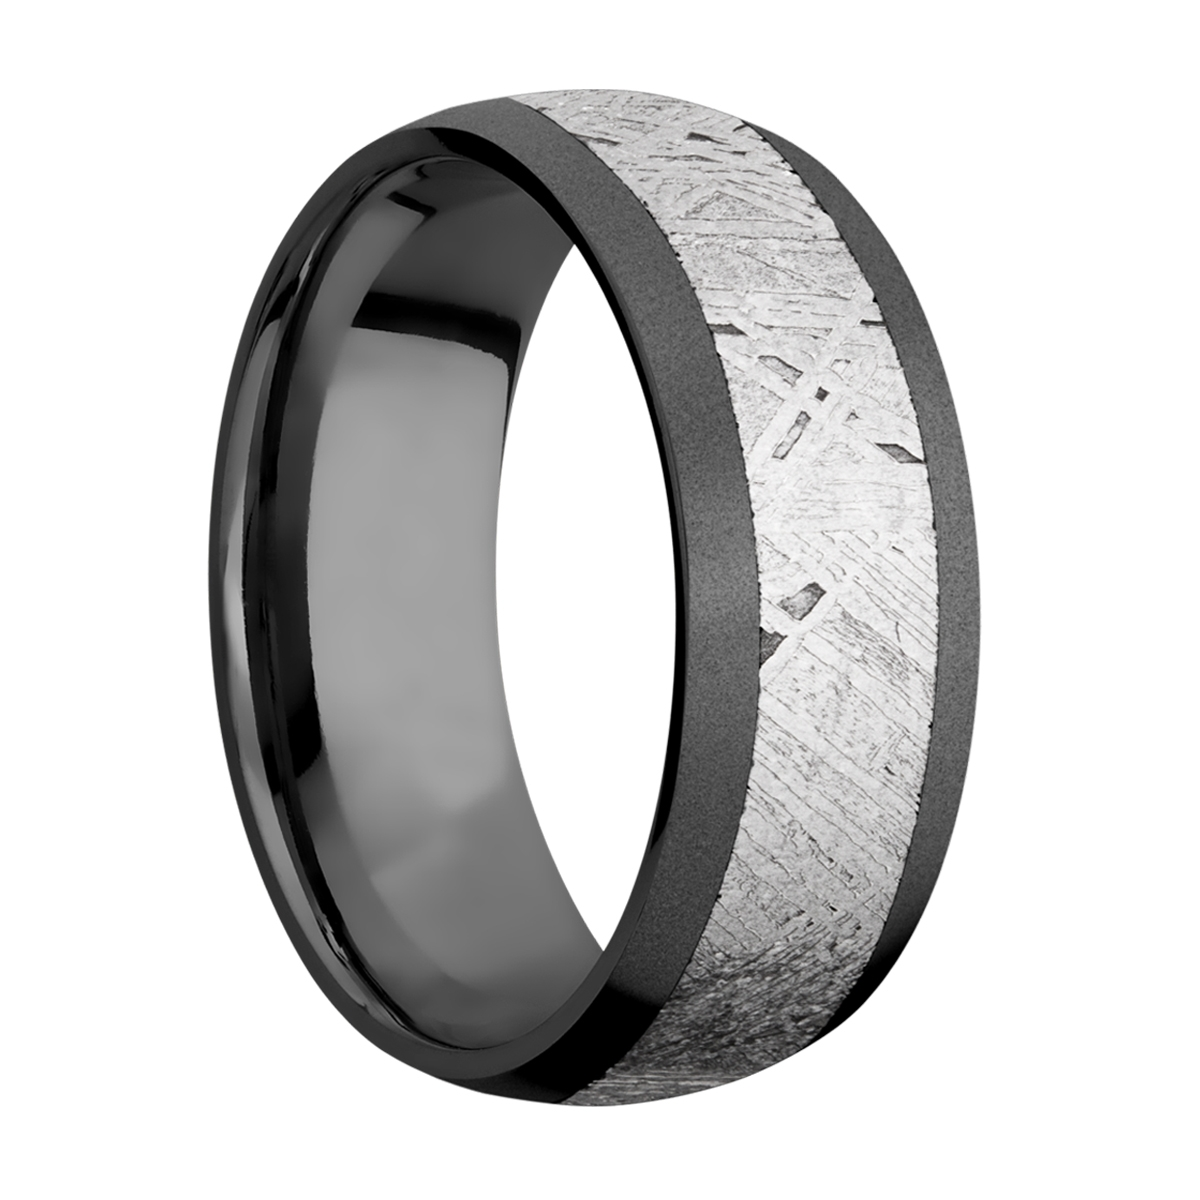 Lashbrook Z8D15/METEORITE Zirconium Wedding Ring or Band Alternative View 1